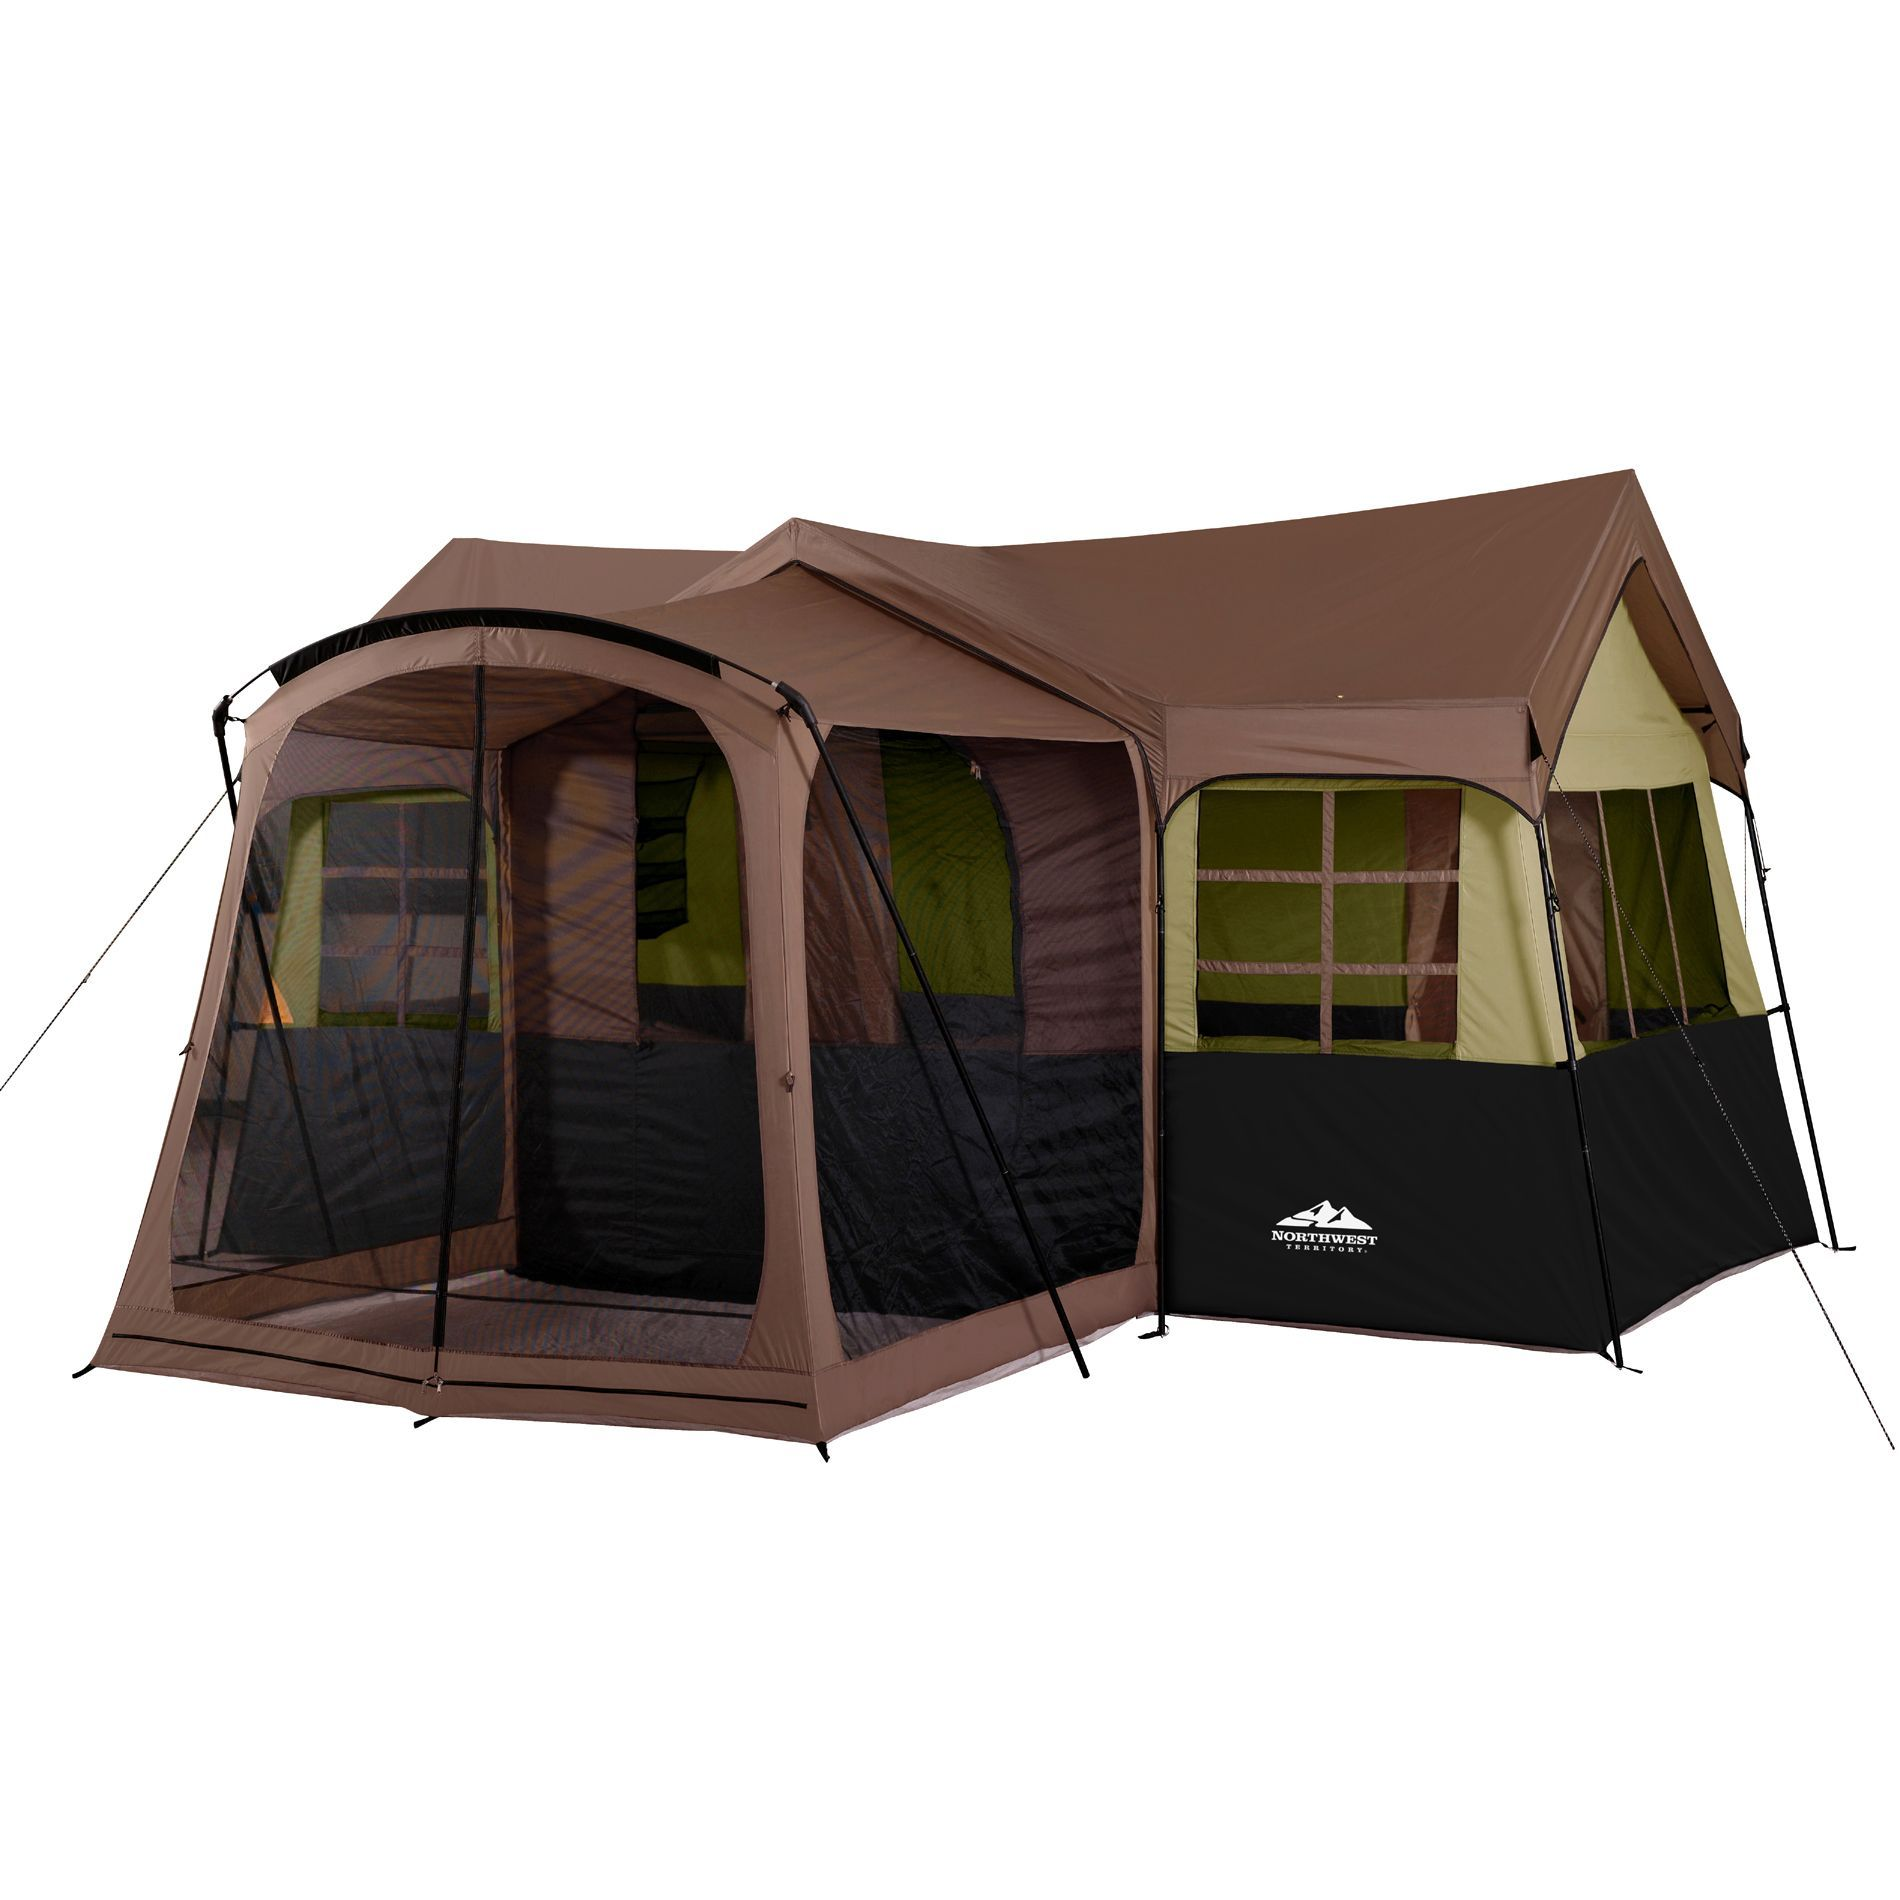 Reviews - Family Cabin with Screen Porch Tent 15ft x 16ft - Kmart $250  sc 1 st  Pinterest & Reviews - Family Cabin with Screen Porch Tent 15ft x 16ft - Kmart ...